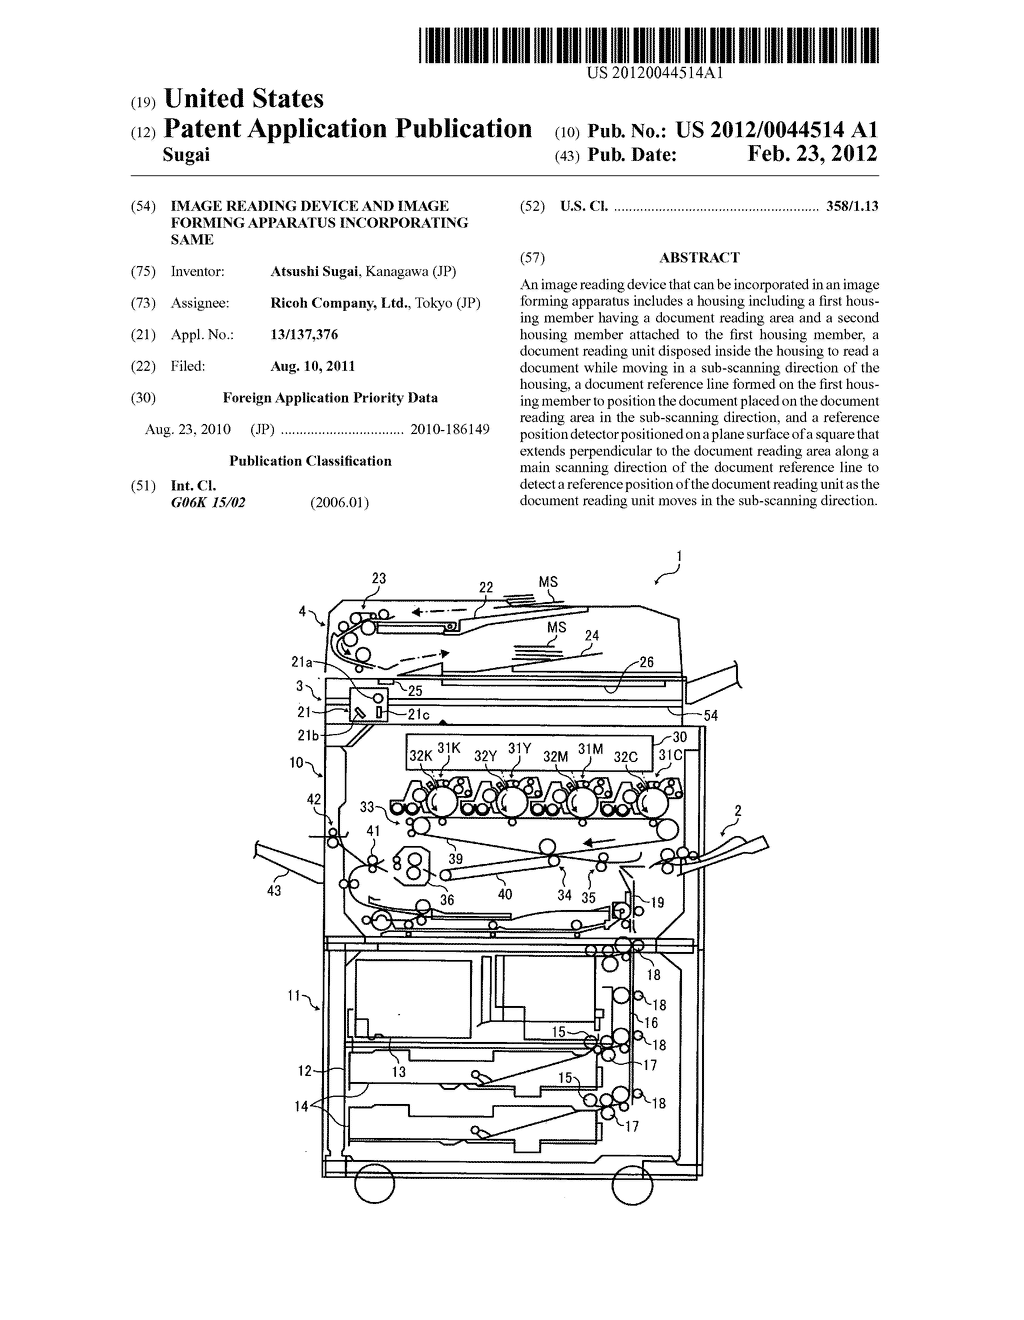 Image reading device and image forming apparatus incorporating same - diagram, schematic, and image 01